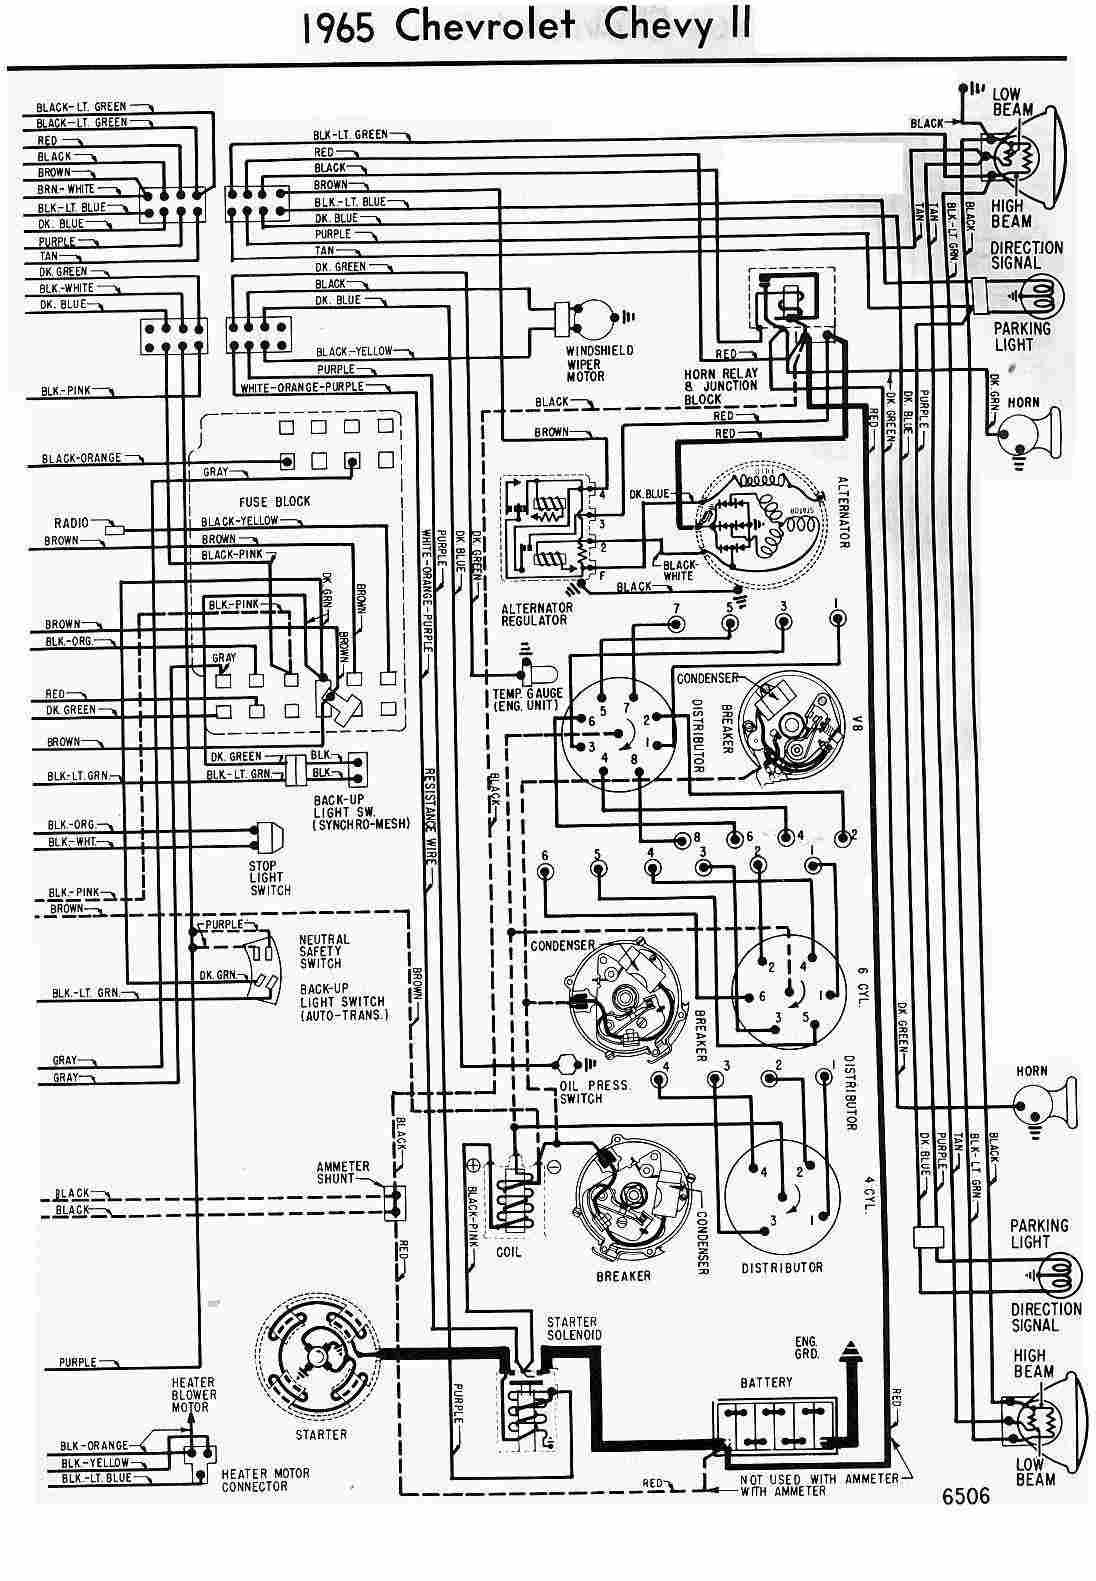 1975 corvette wiring diagrams portal solent Engine Wiring Diagram  T6500 Wiring Diagram 1966 Impala Wiring Diagram 1959 Impala Wiring Diagram